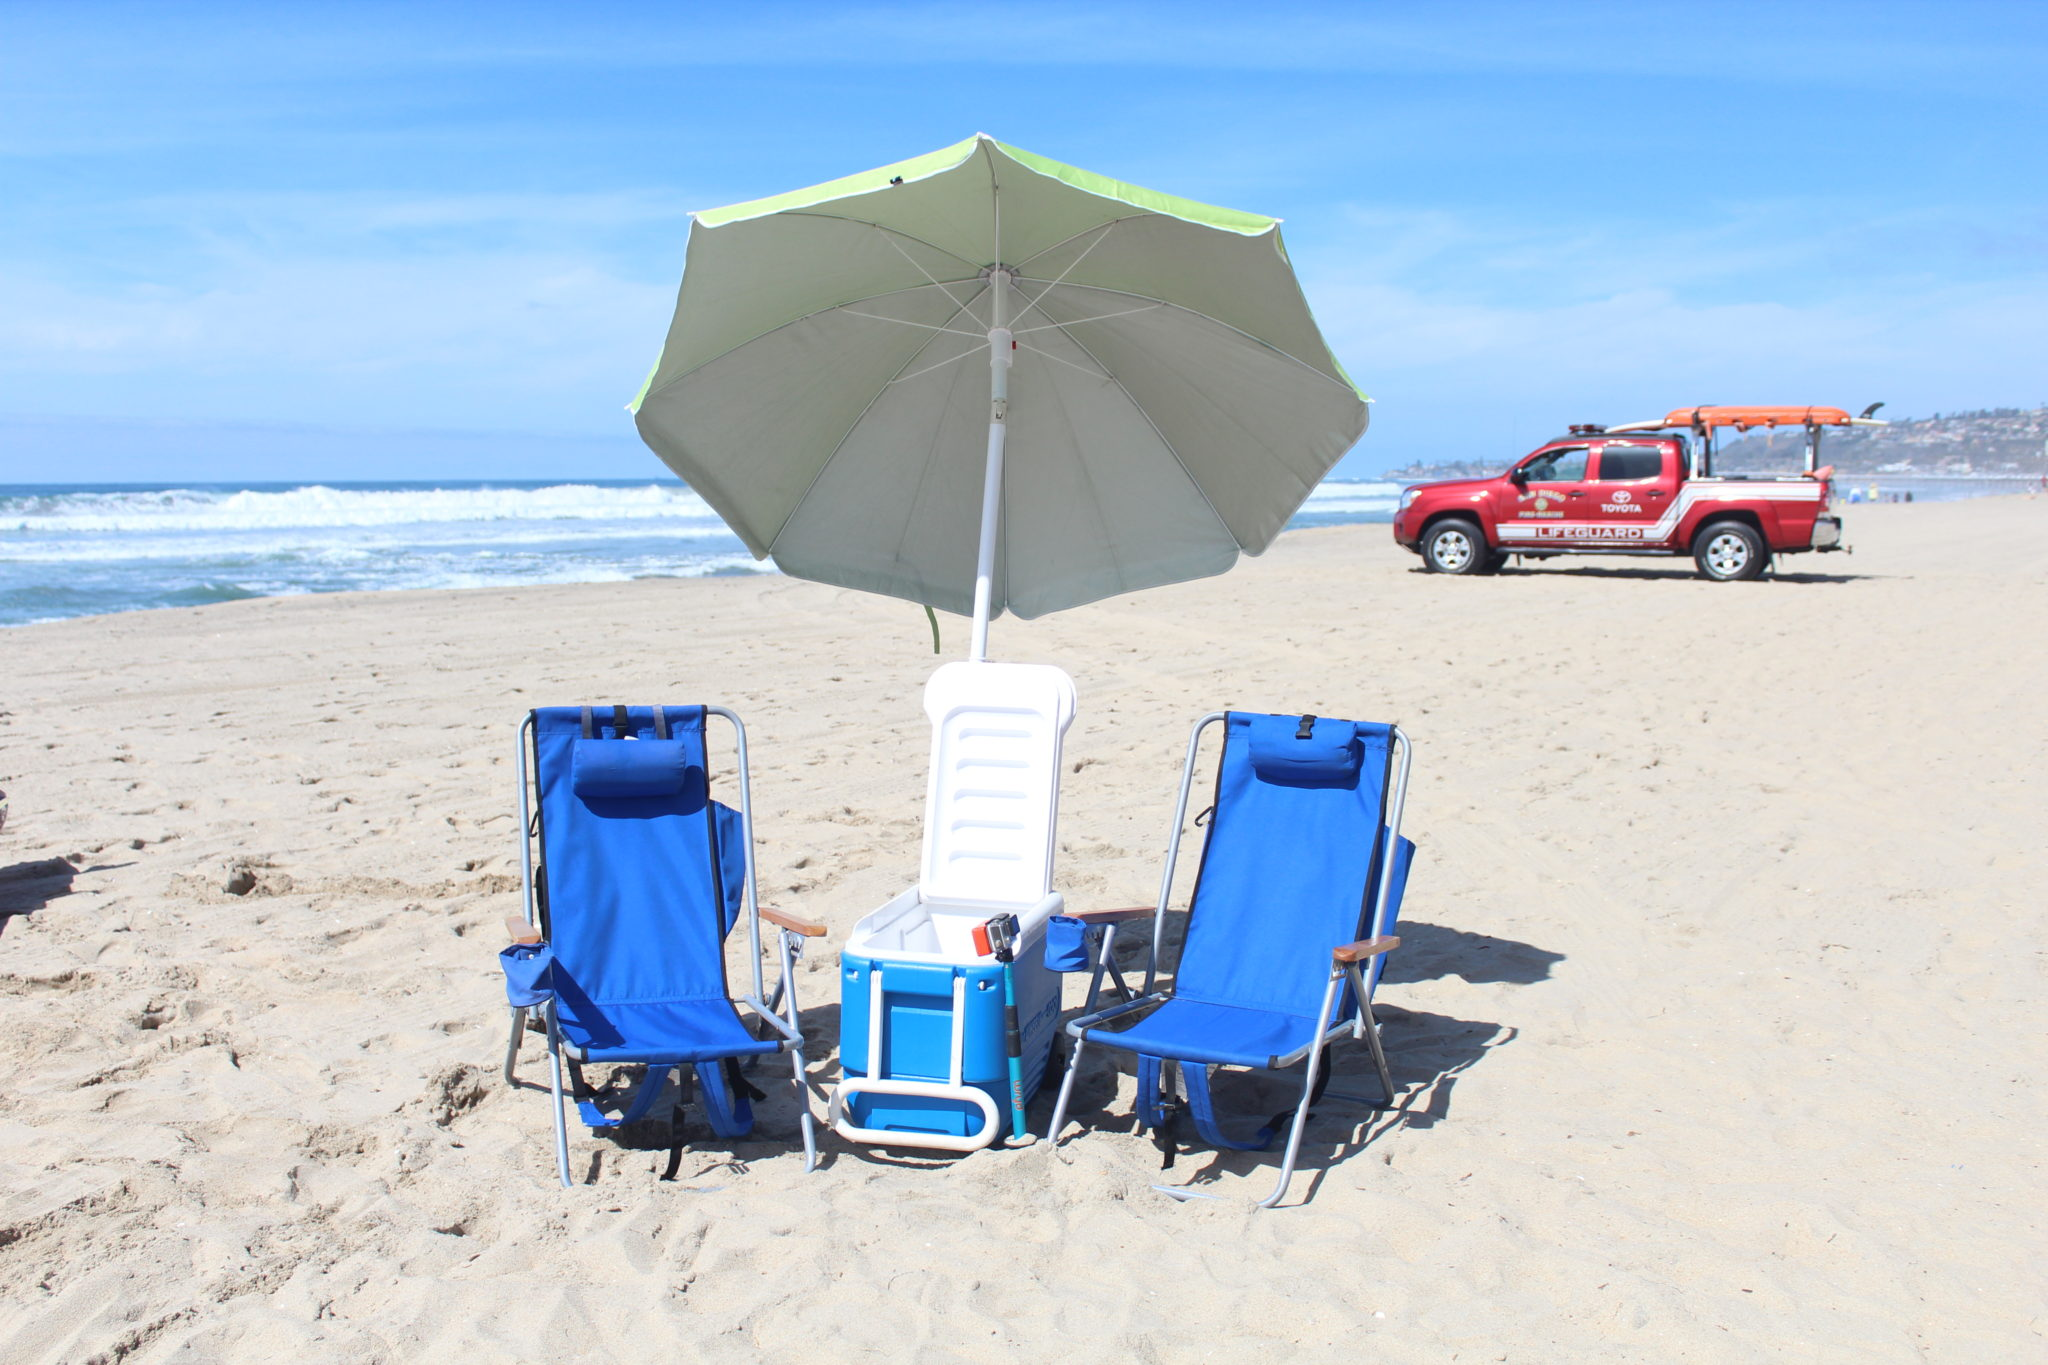 best inexpensive beach chairs chair cover hire telford umbrellas and more cheap rentals